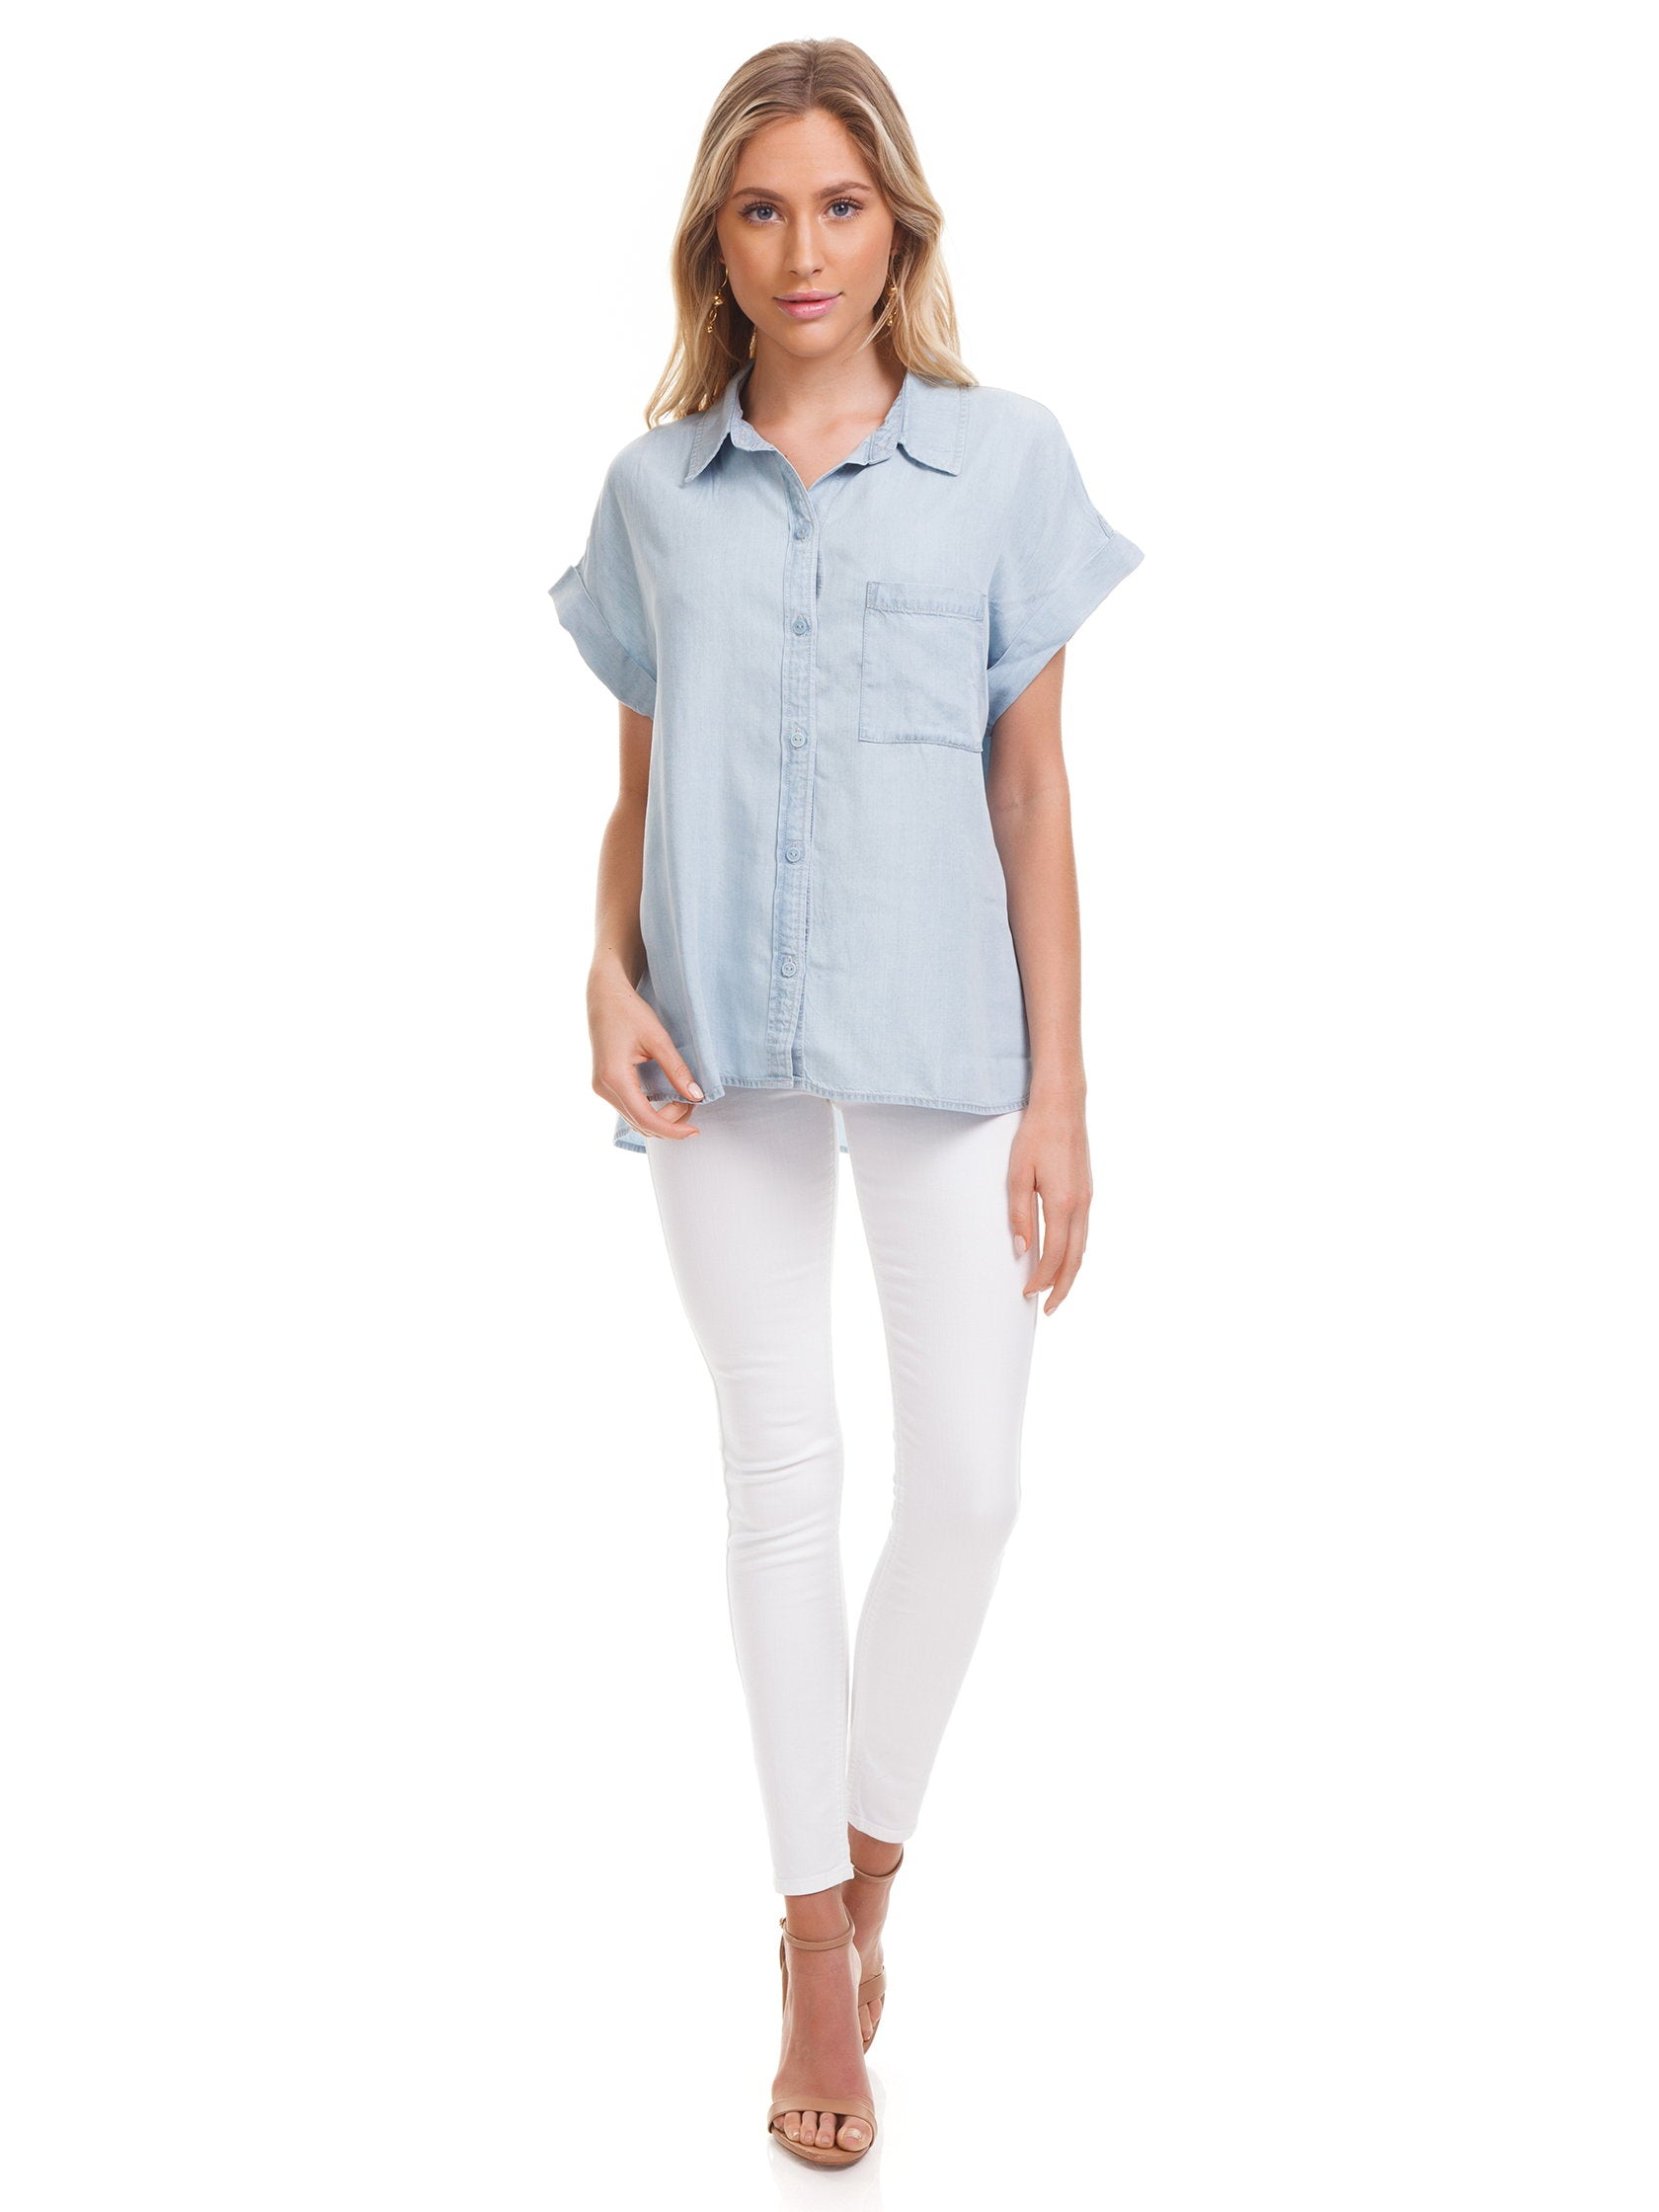 Girl wearing a top rental from SANCTUARY called Mod Short Sleeve Boyfriend Shirt